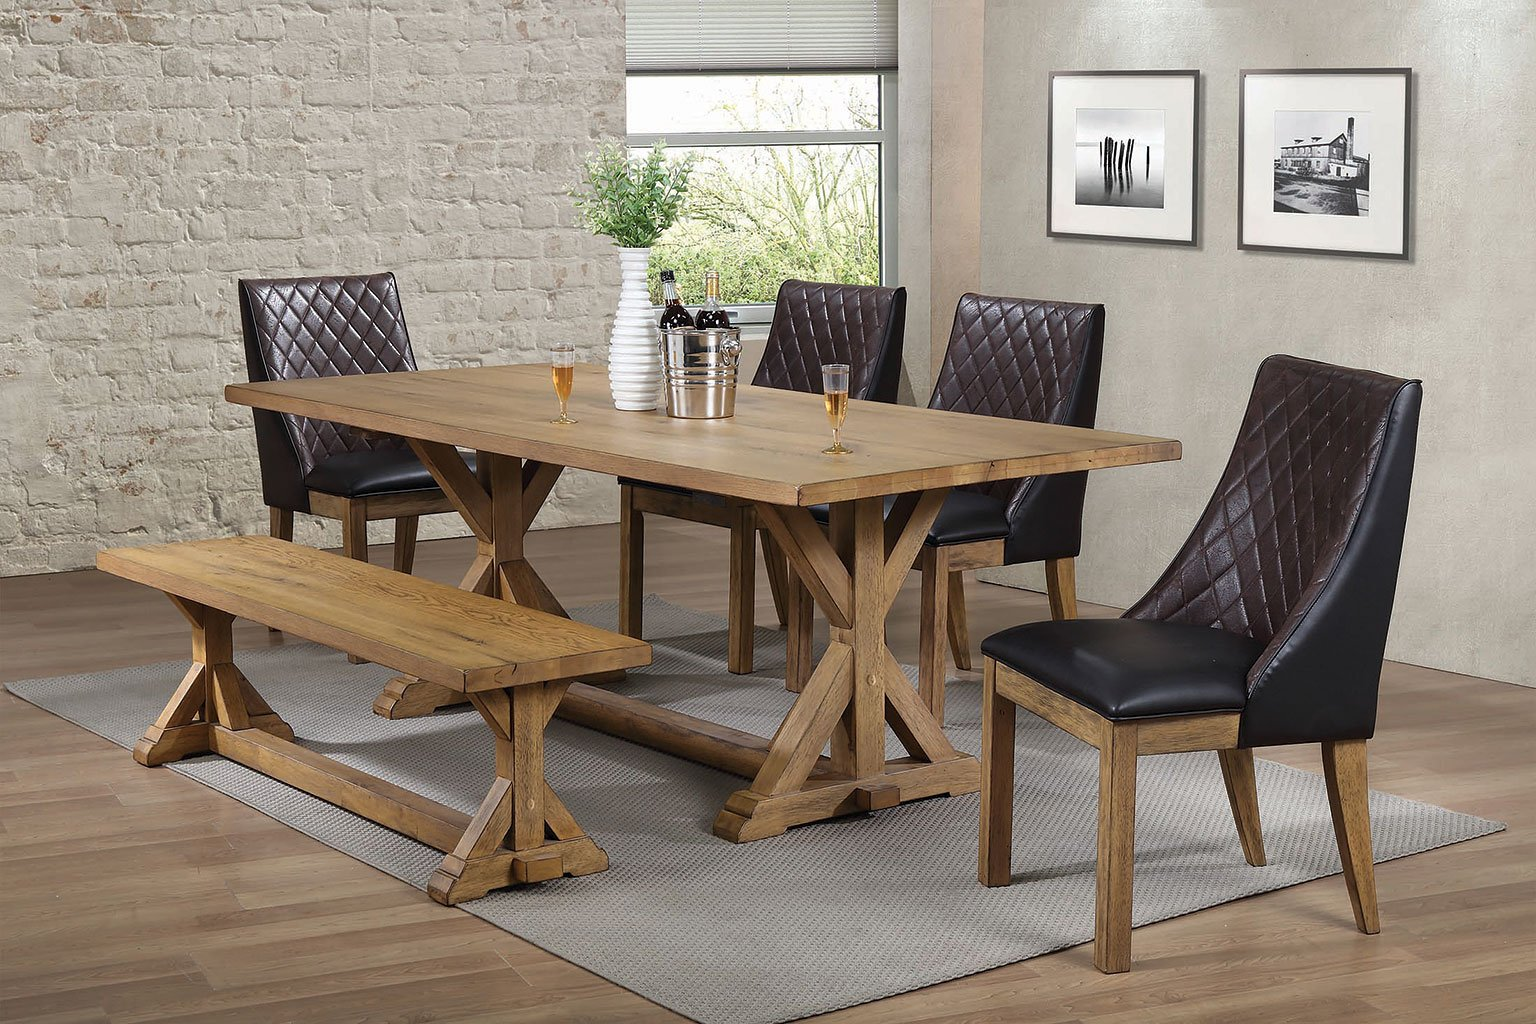 Douglas Dining Room Set w/ Dark Brown Chairs by Coaster ...